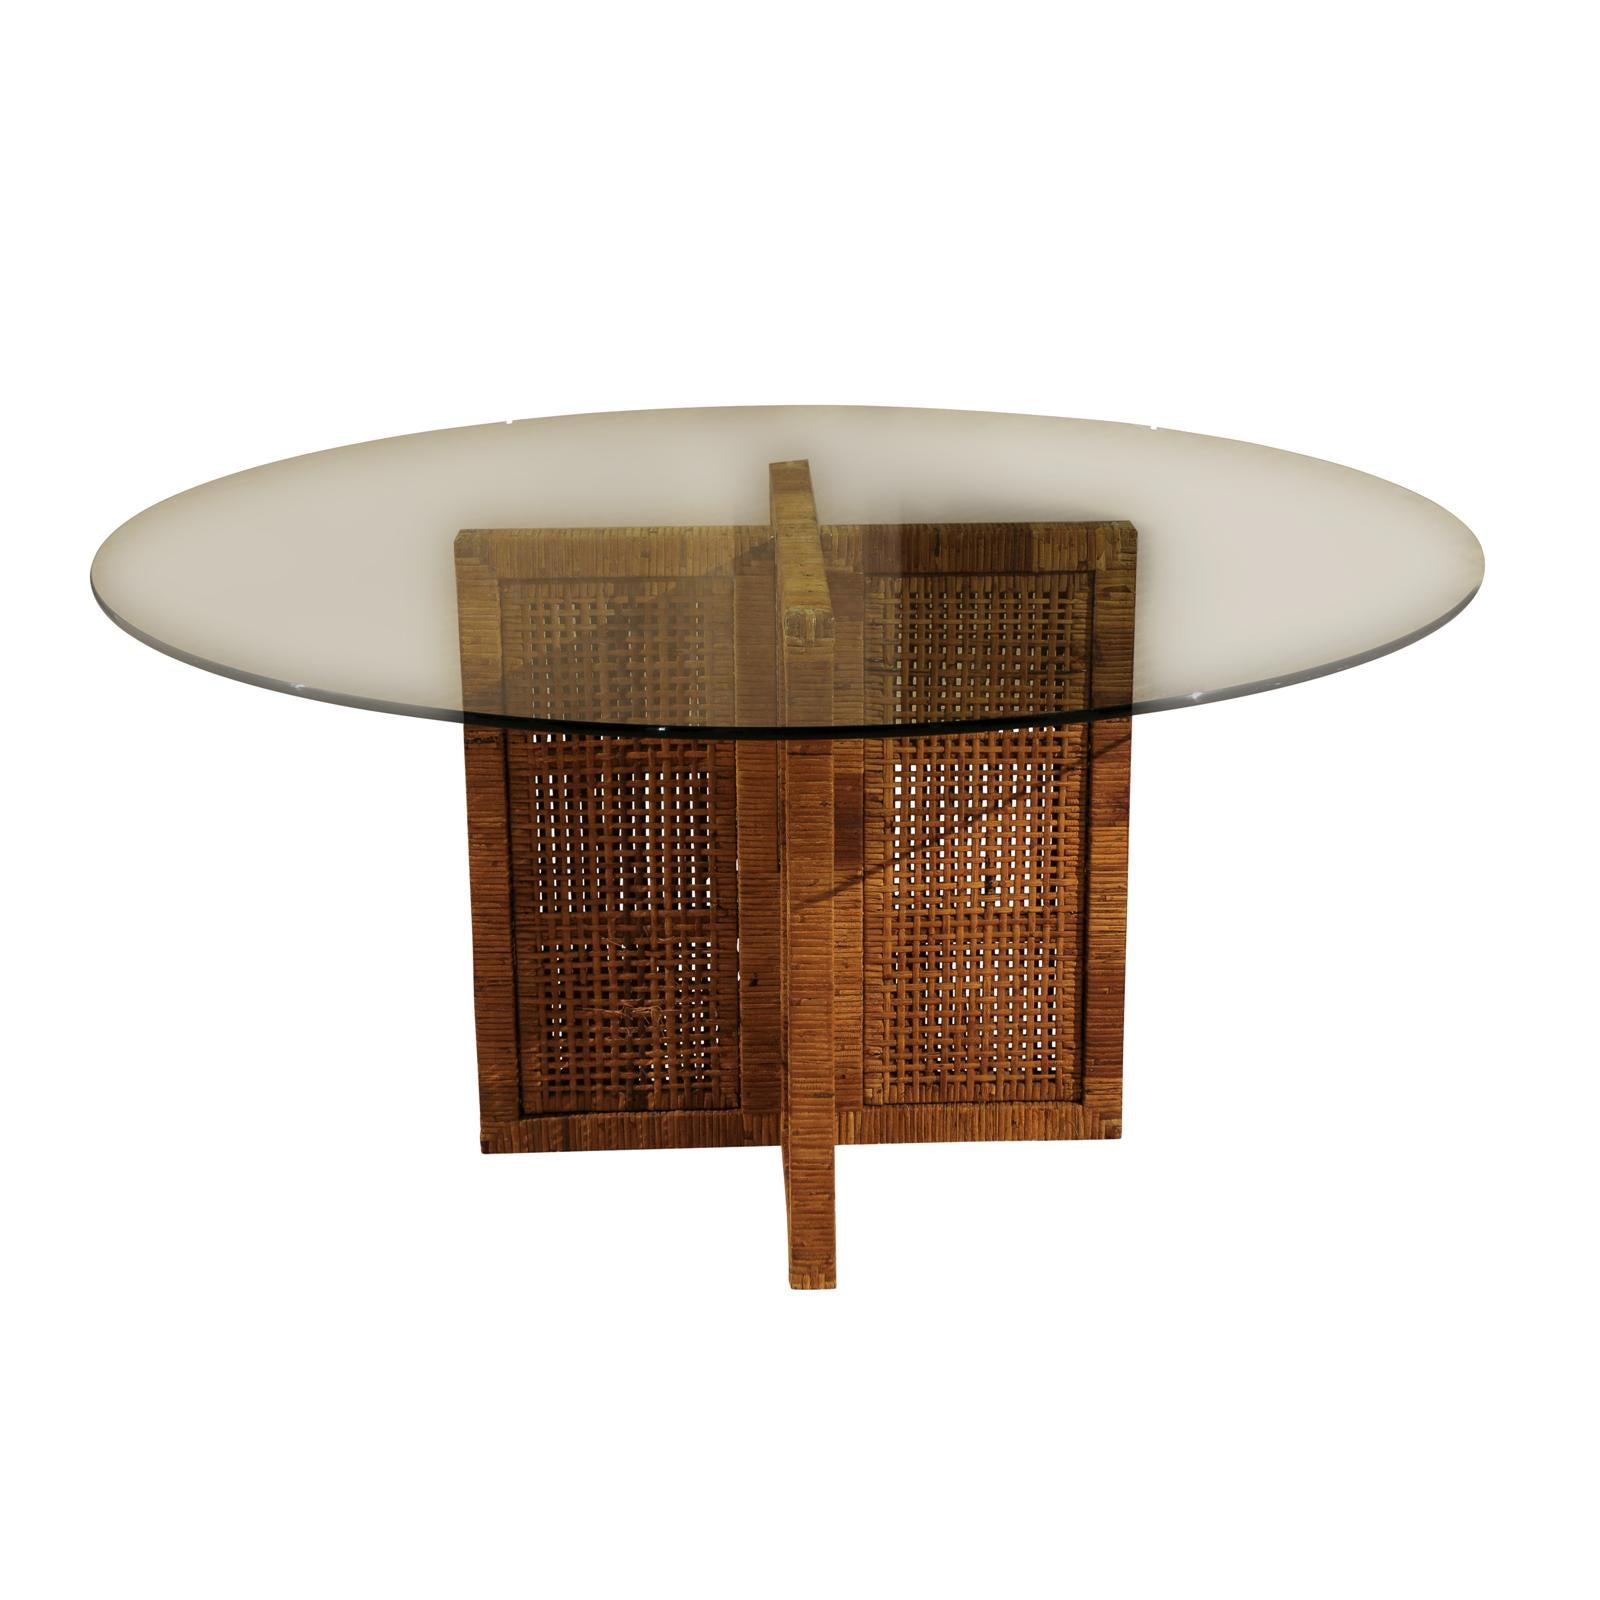 Restored Rattan, Cane and Glass Table by Bielecky Brothers